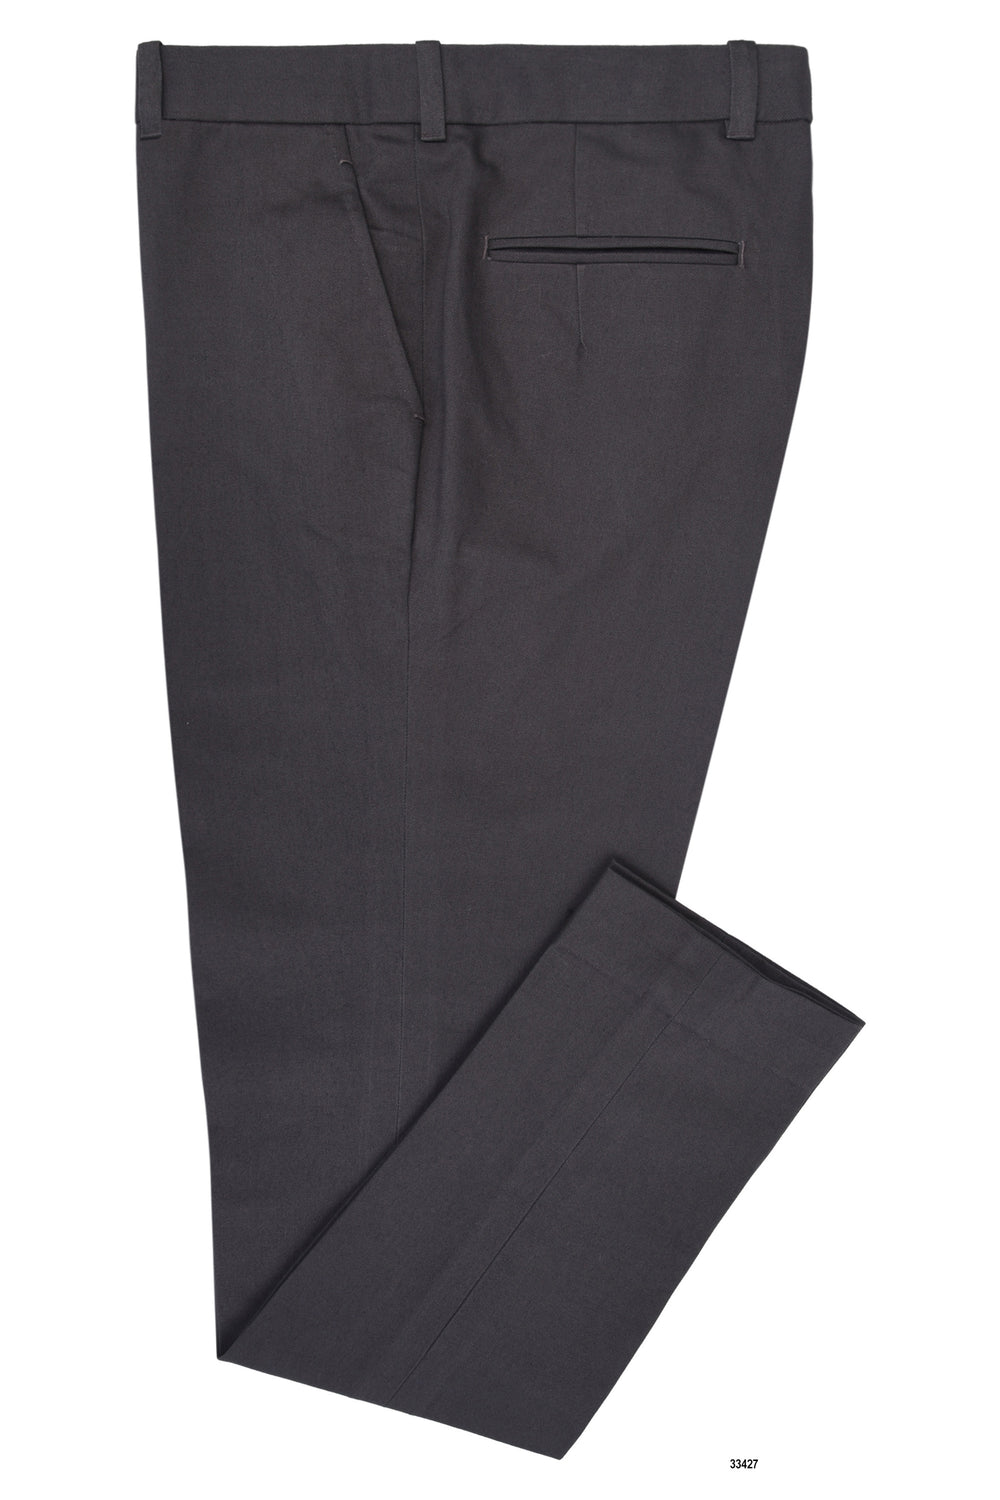 Charcoal Grey Twill Pants